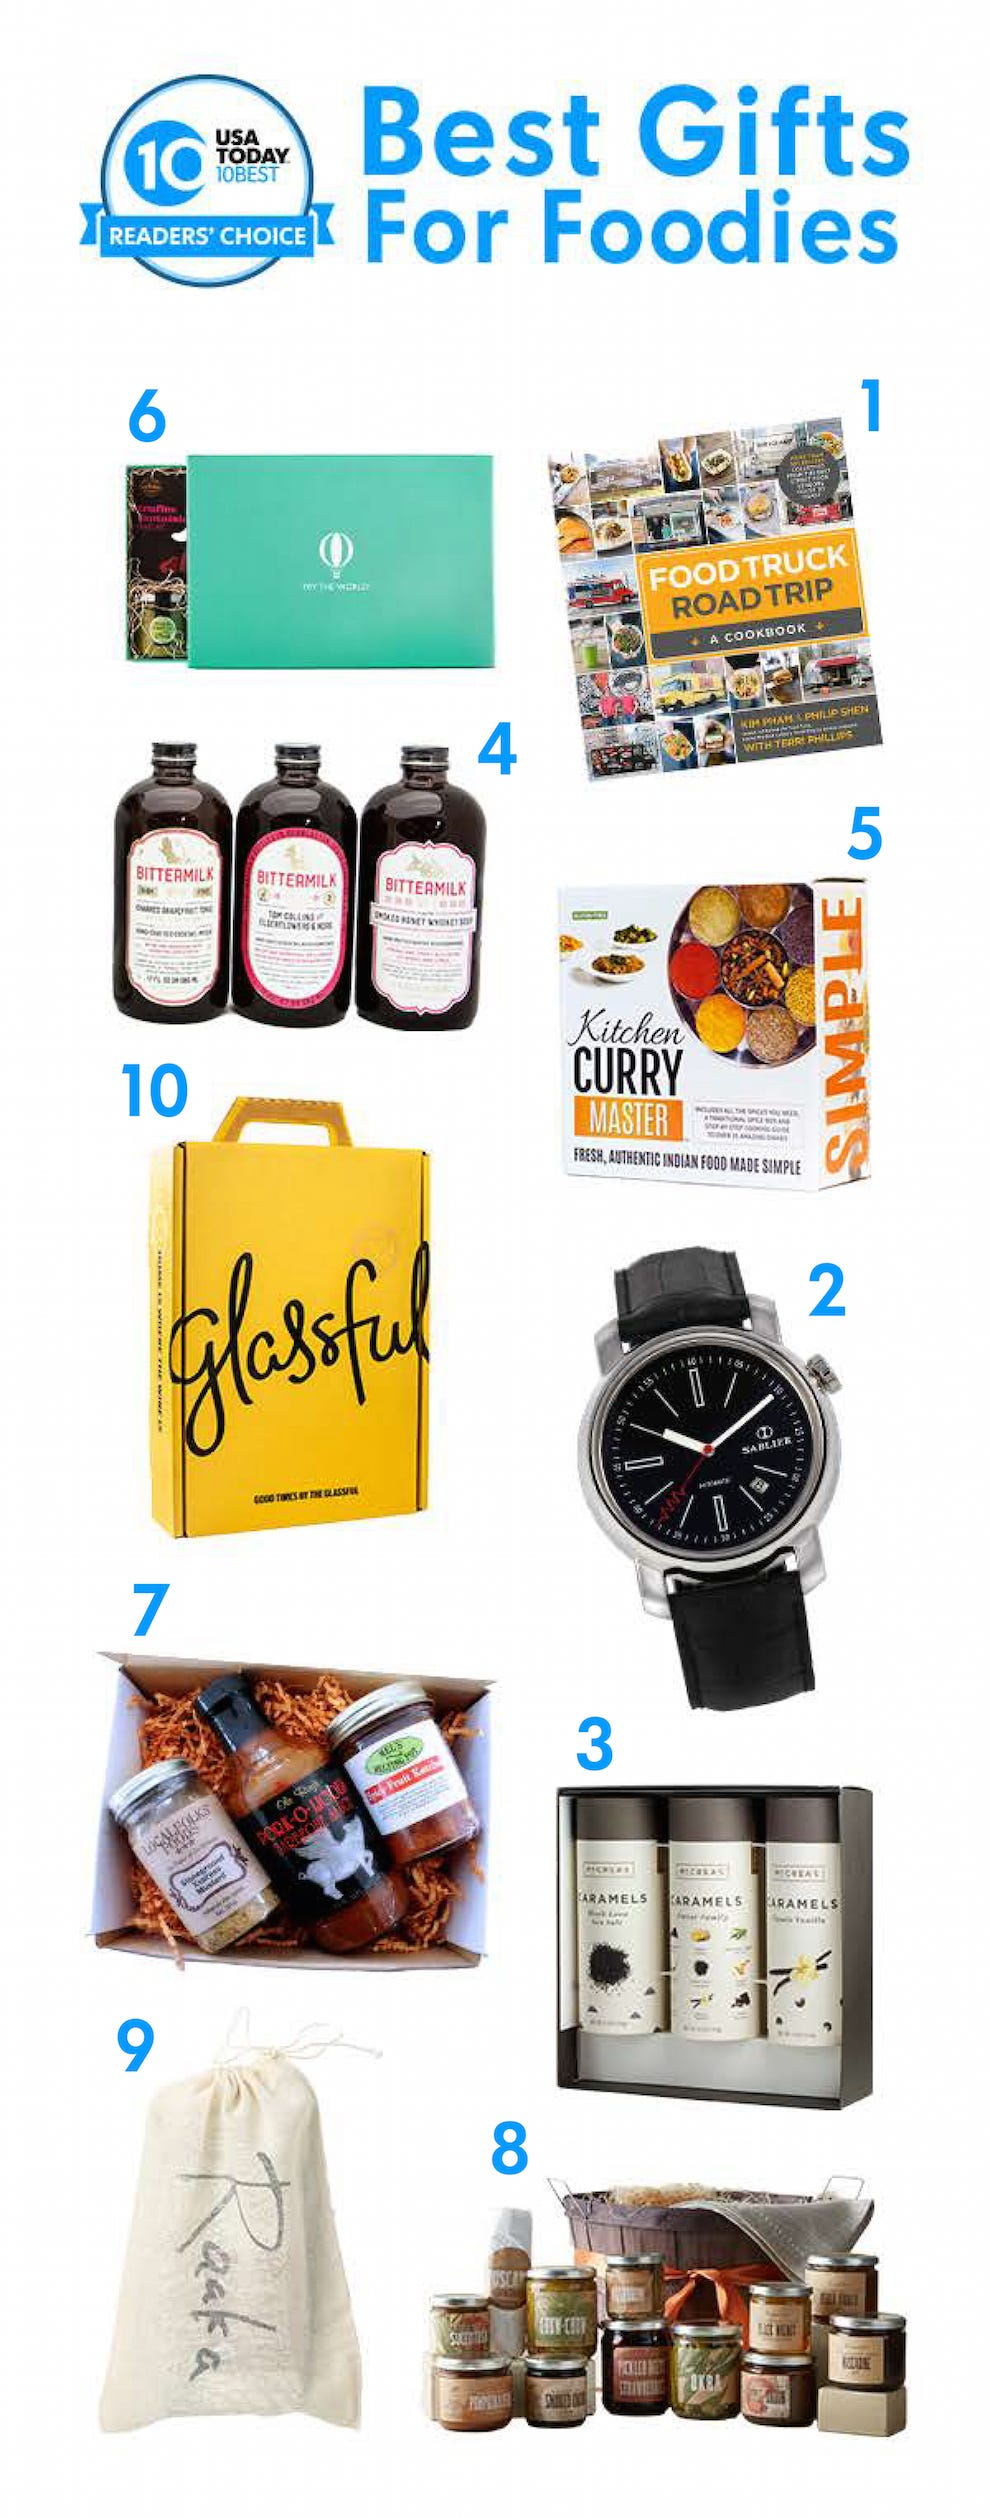 Best Gift for Foodies